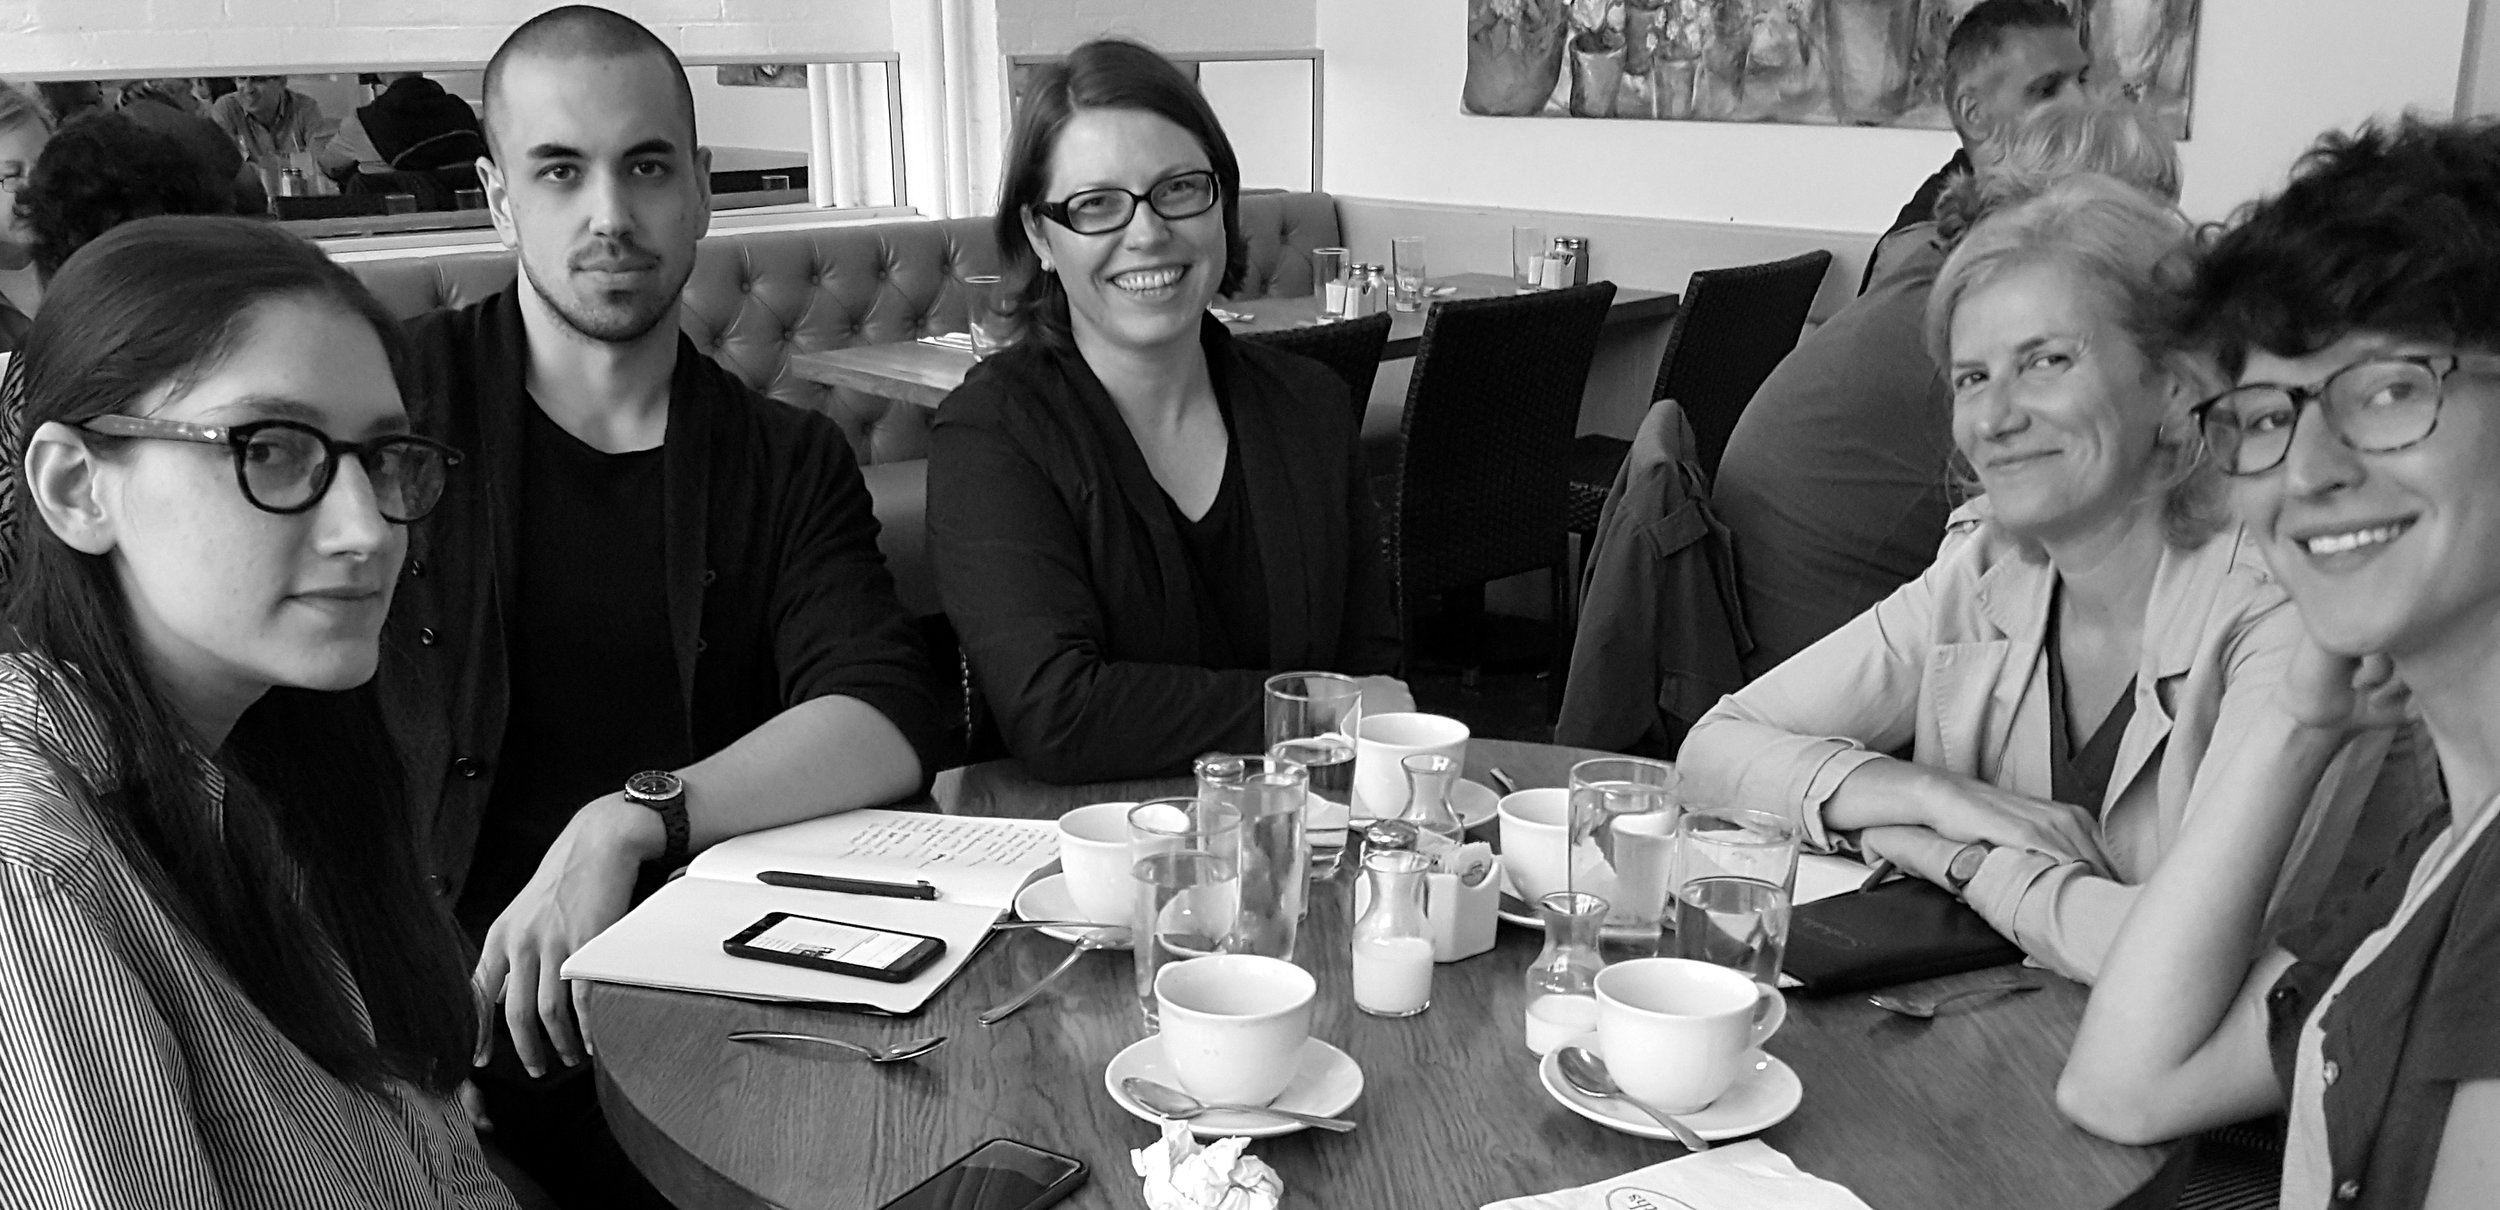 Conference organizers discussing the submissions. From left: Rachel Wetzler, Patryk Tomaszewski, Alise Tifentale, Dr. Romy Golan, and Patricia Manos. At Sarabeth's Tribeca, New York.